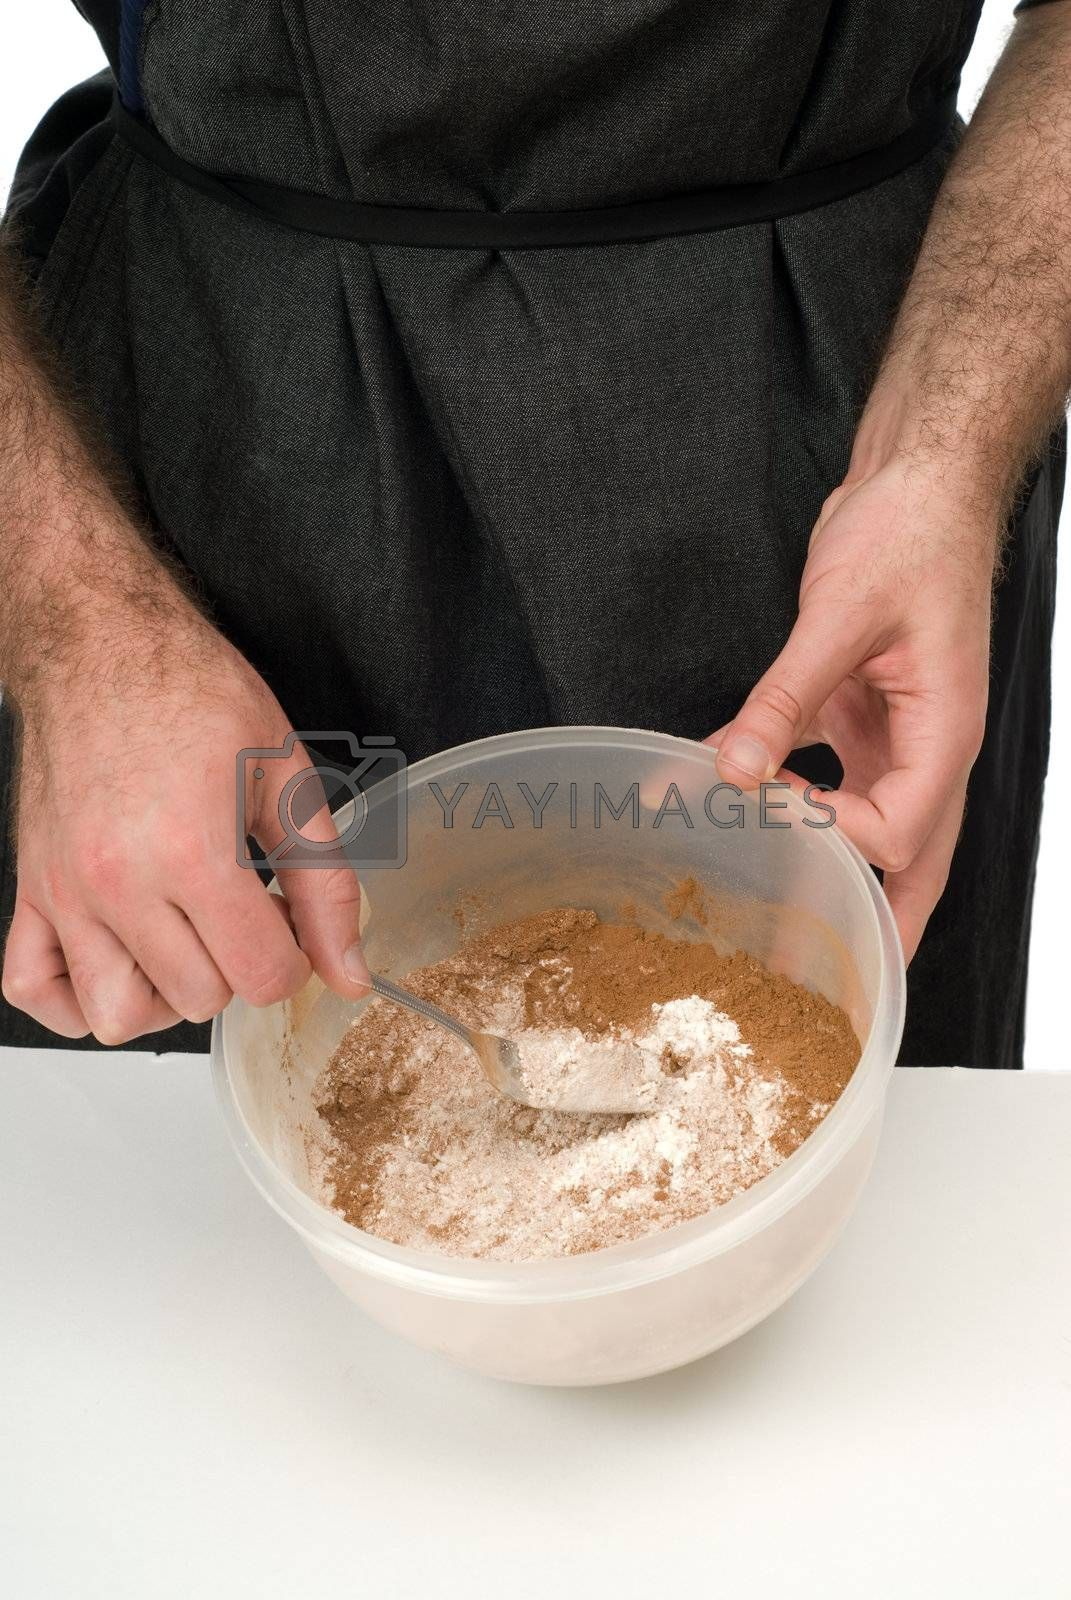 Royalty free image of Sifting Ingredients by dragon_fang